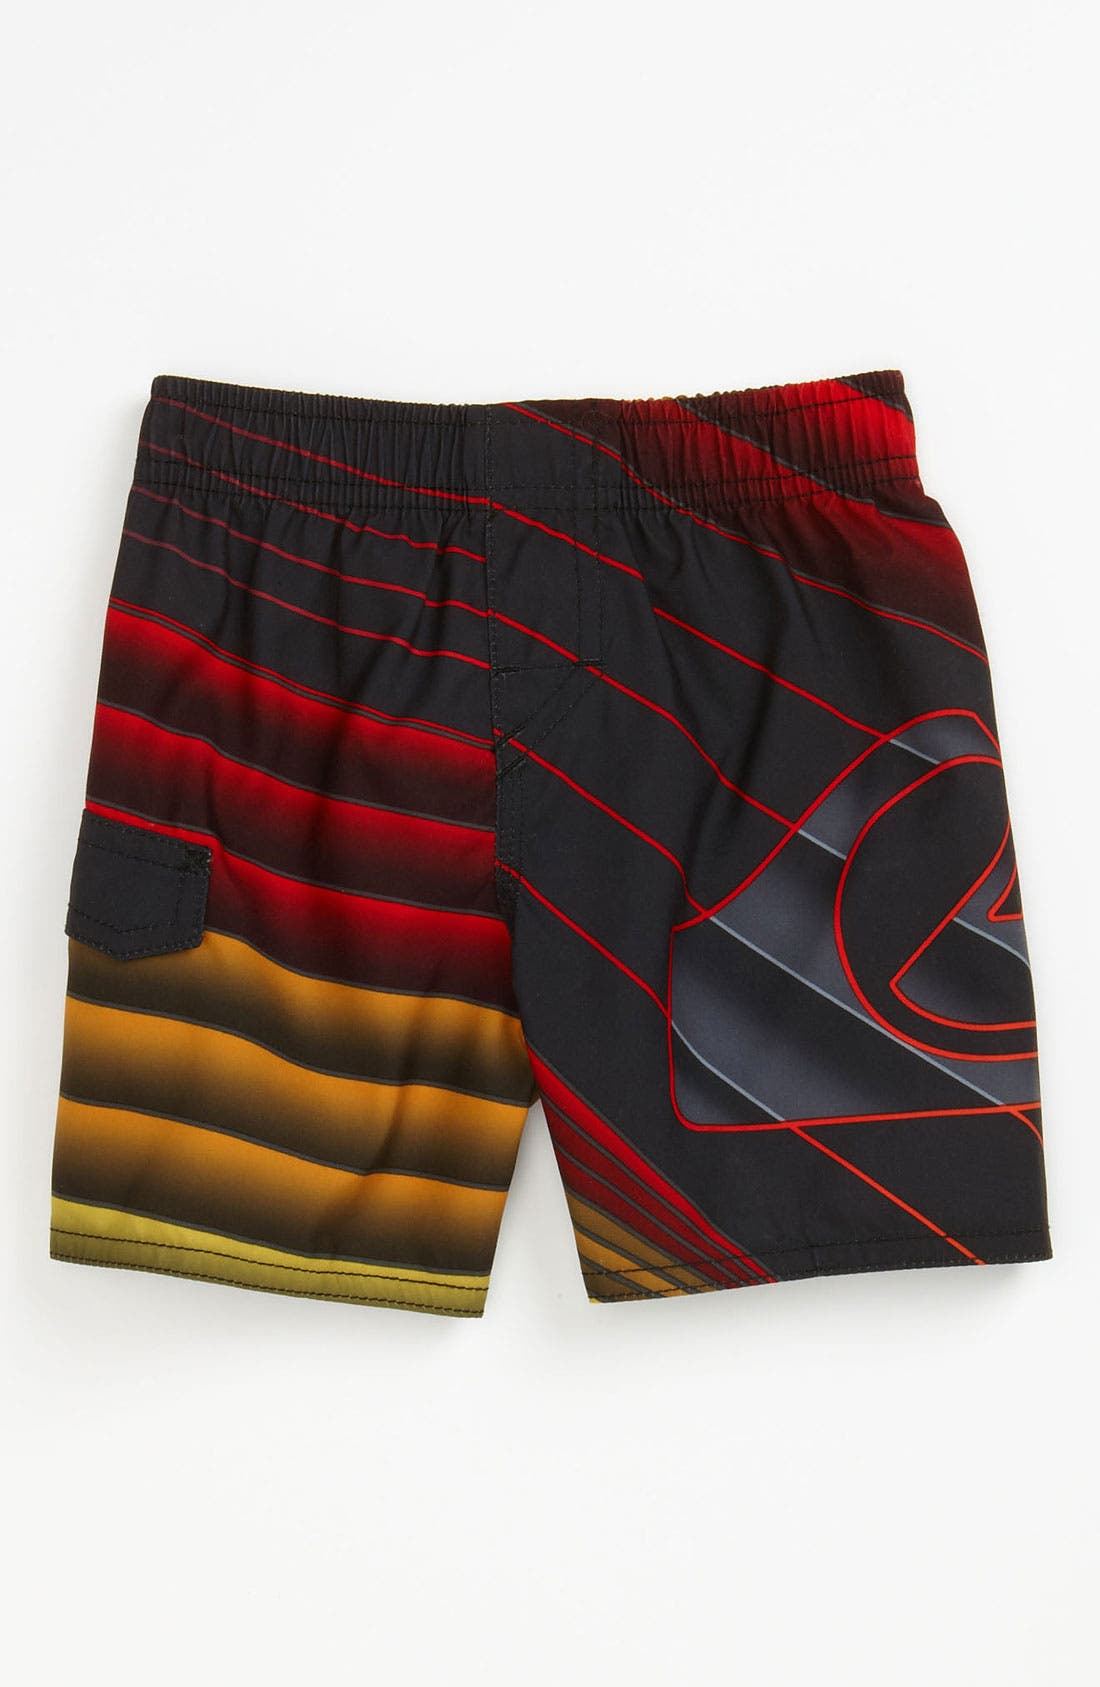 Alternate Image 1 Selected - Quiksilver 'Revival' Volley Shorts (Toddler)